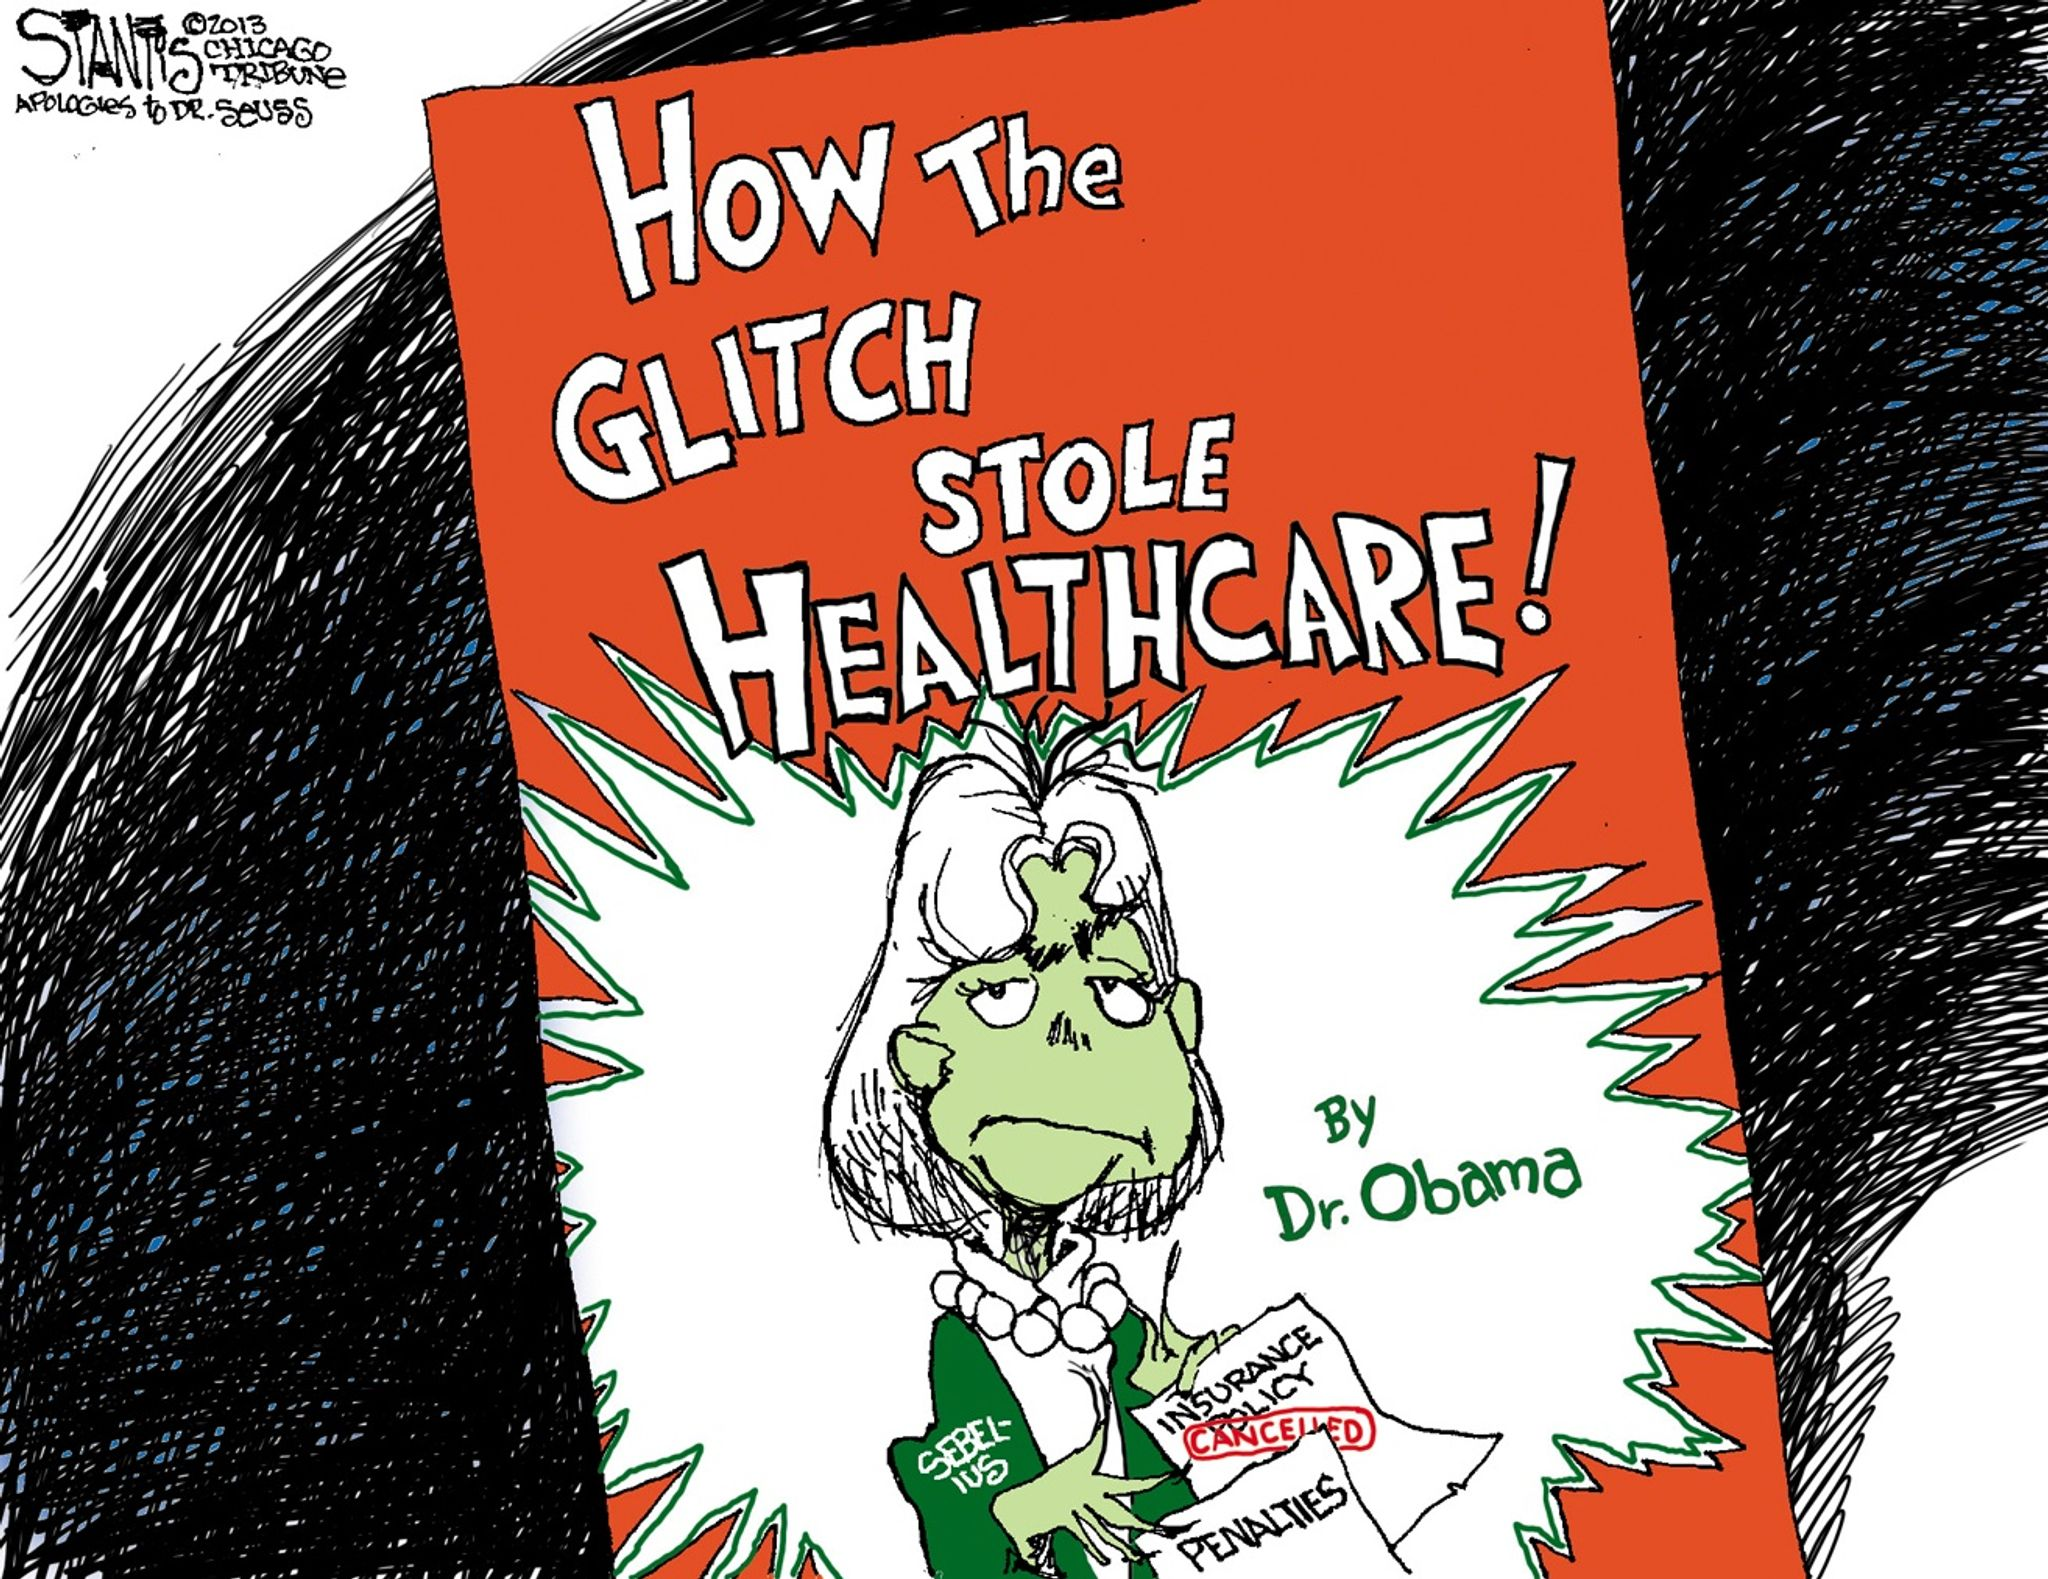 Political Cartoons Obamacare How The Grinch Stole Healthcare Washington Times